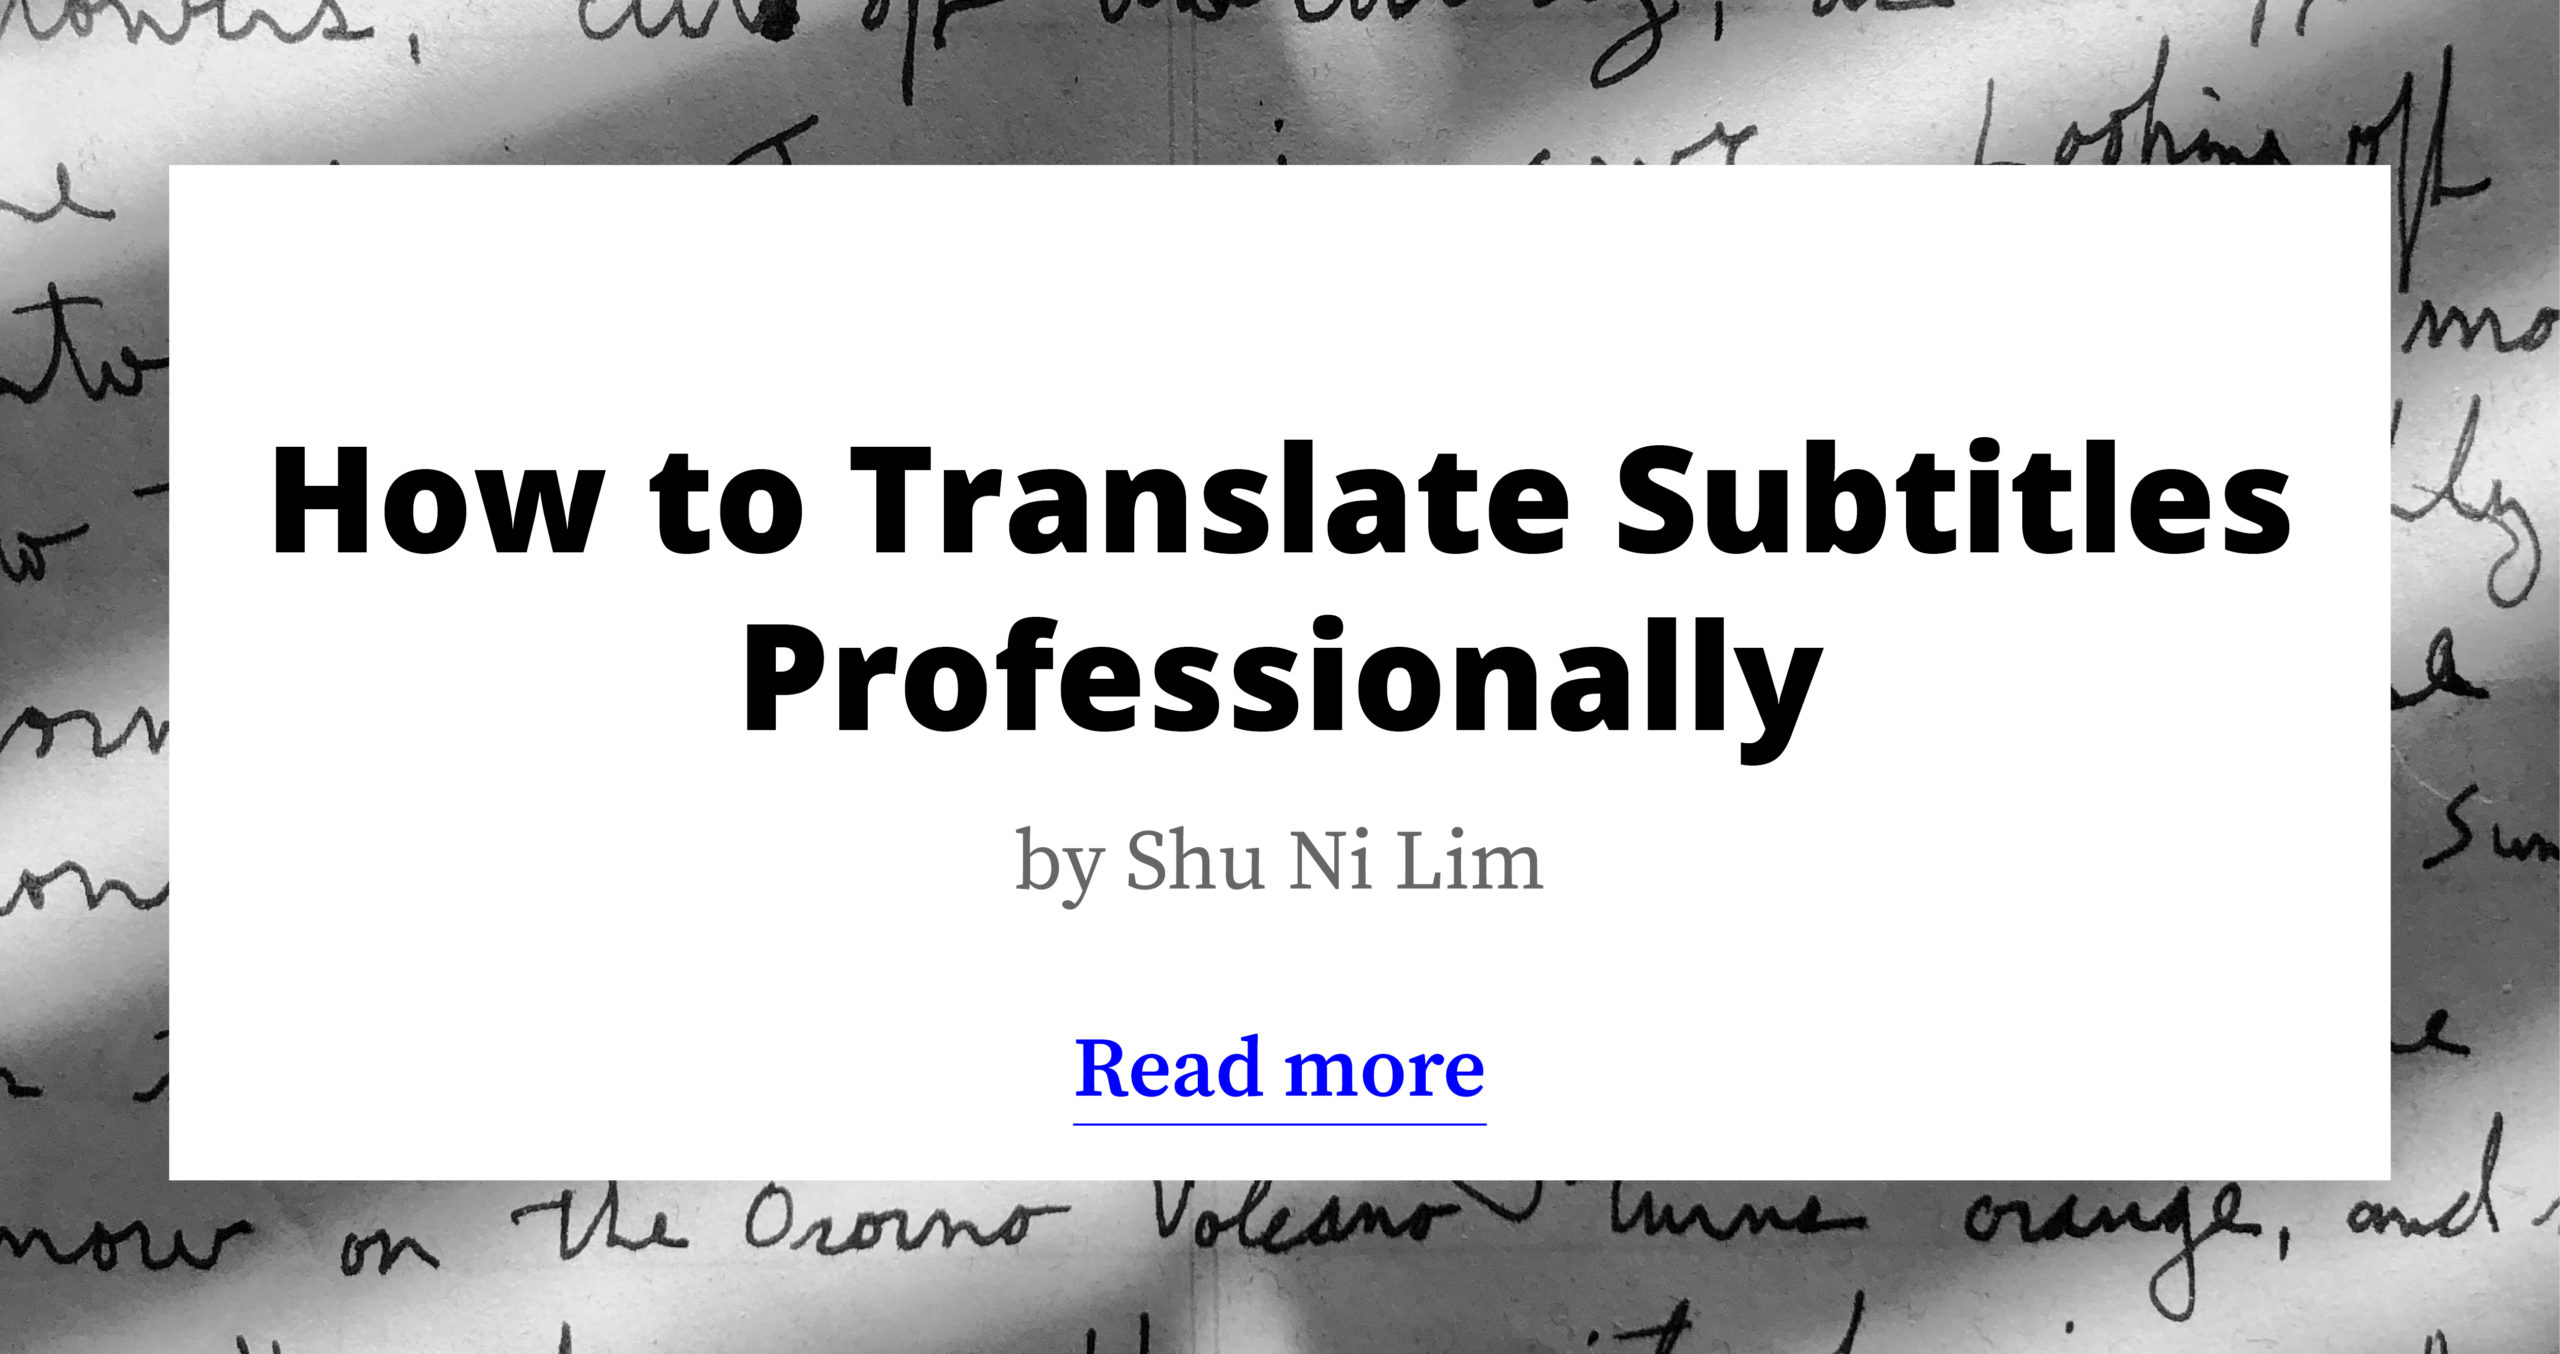 How to Translate Subtitles Professionally